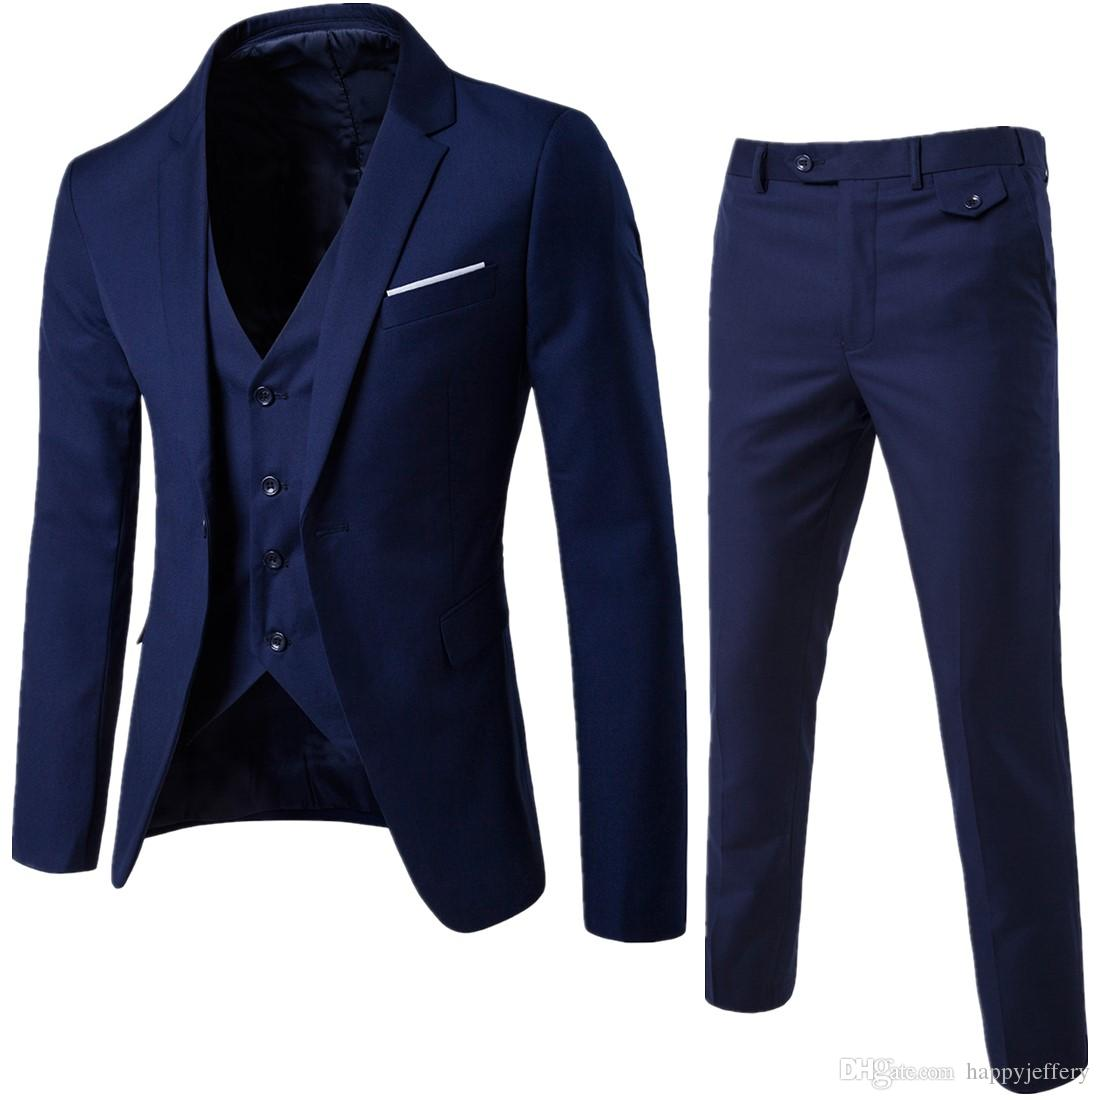 432a6dbbe3e 2019 2017 Men Suit Fashion Business Casual Suit Slim Fit Three Piece Groom  Groomsman Wedding Suit XF001 From Happyjeffery